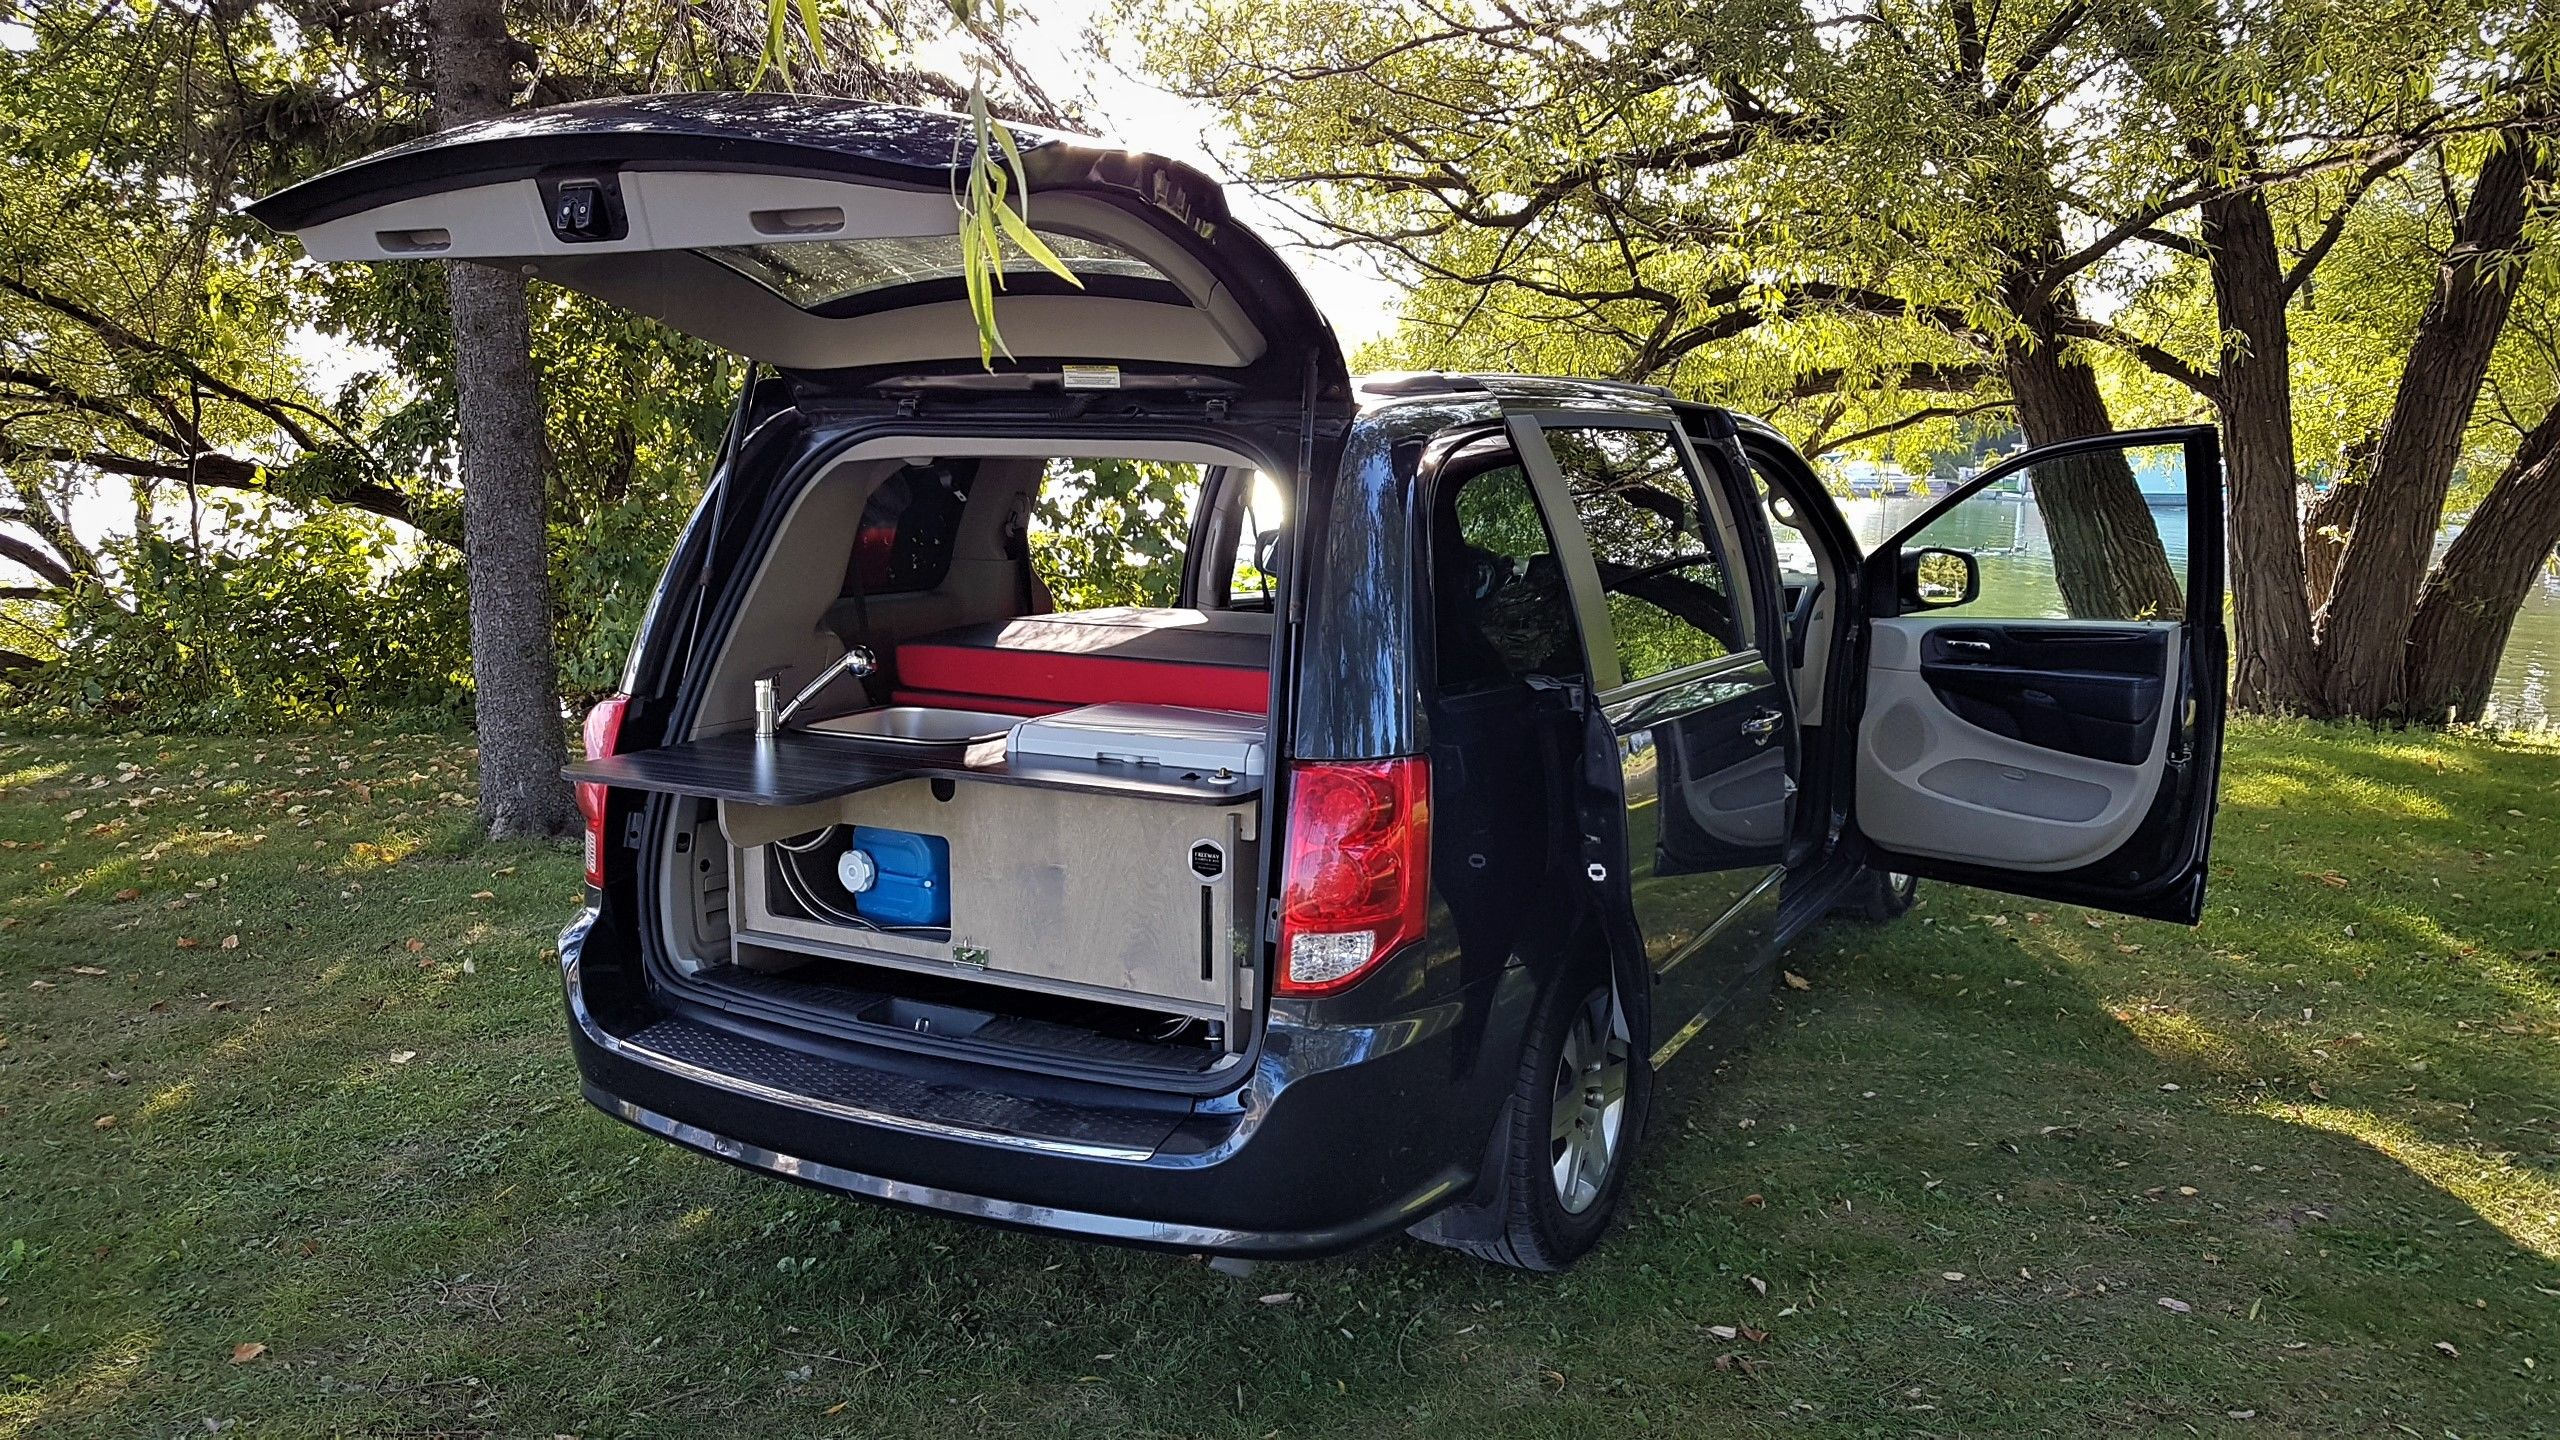 Camper Van Kit Installed In A 2012 Dodge Grand Caravan Freeway